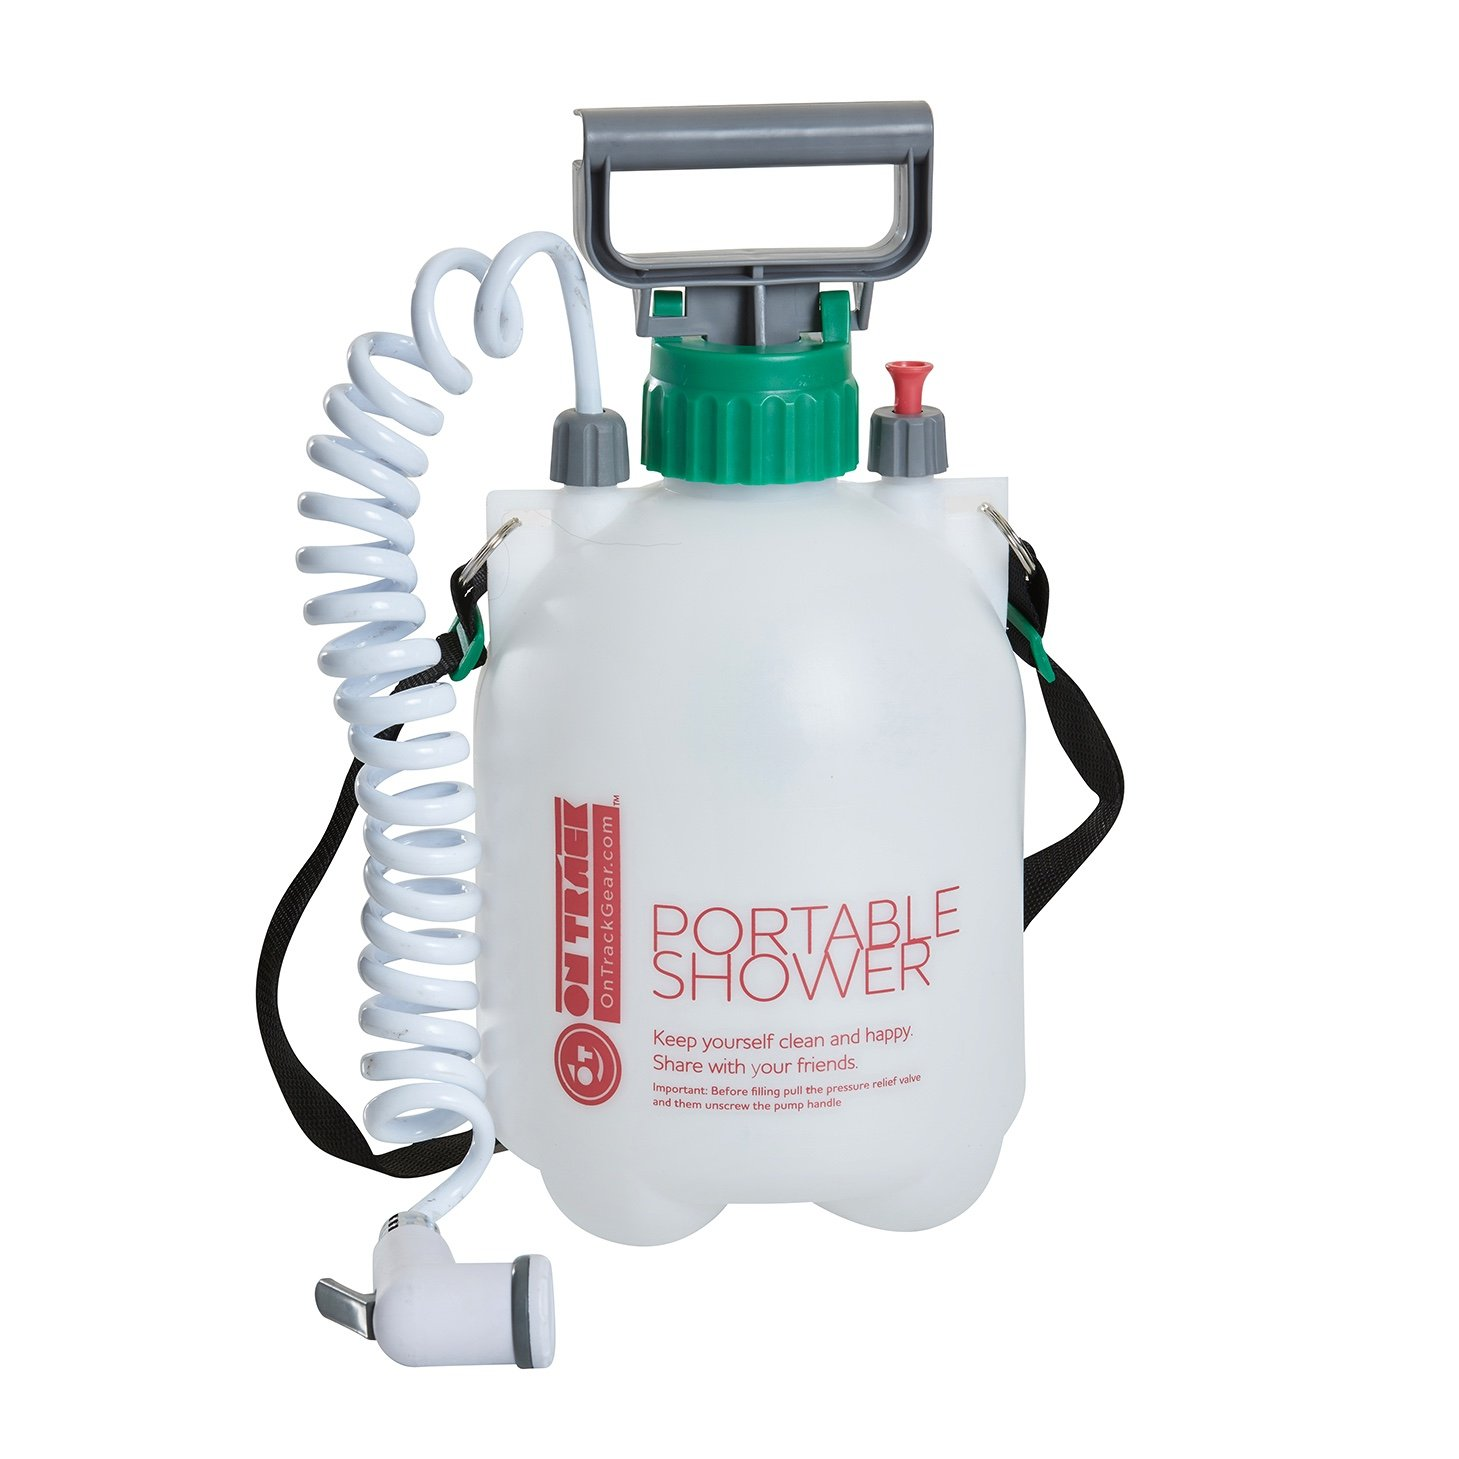 On Track Rugged Outdoor Pressurized Portable Rinse Off Shower - Ideal for Camping, Fishing, Surfing, Cycling, Trail Running.